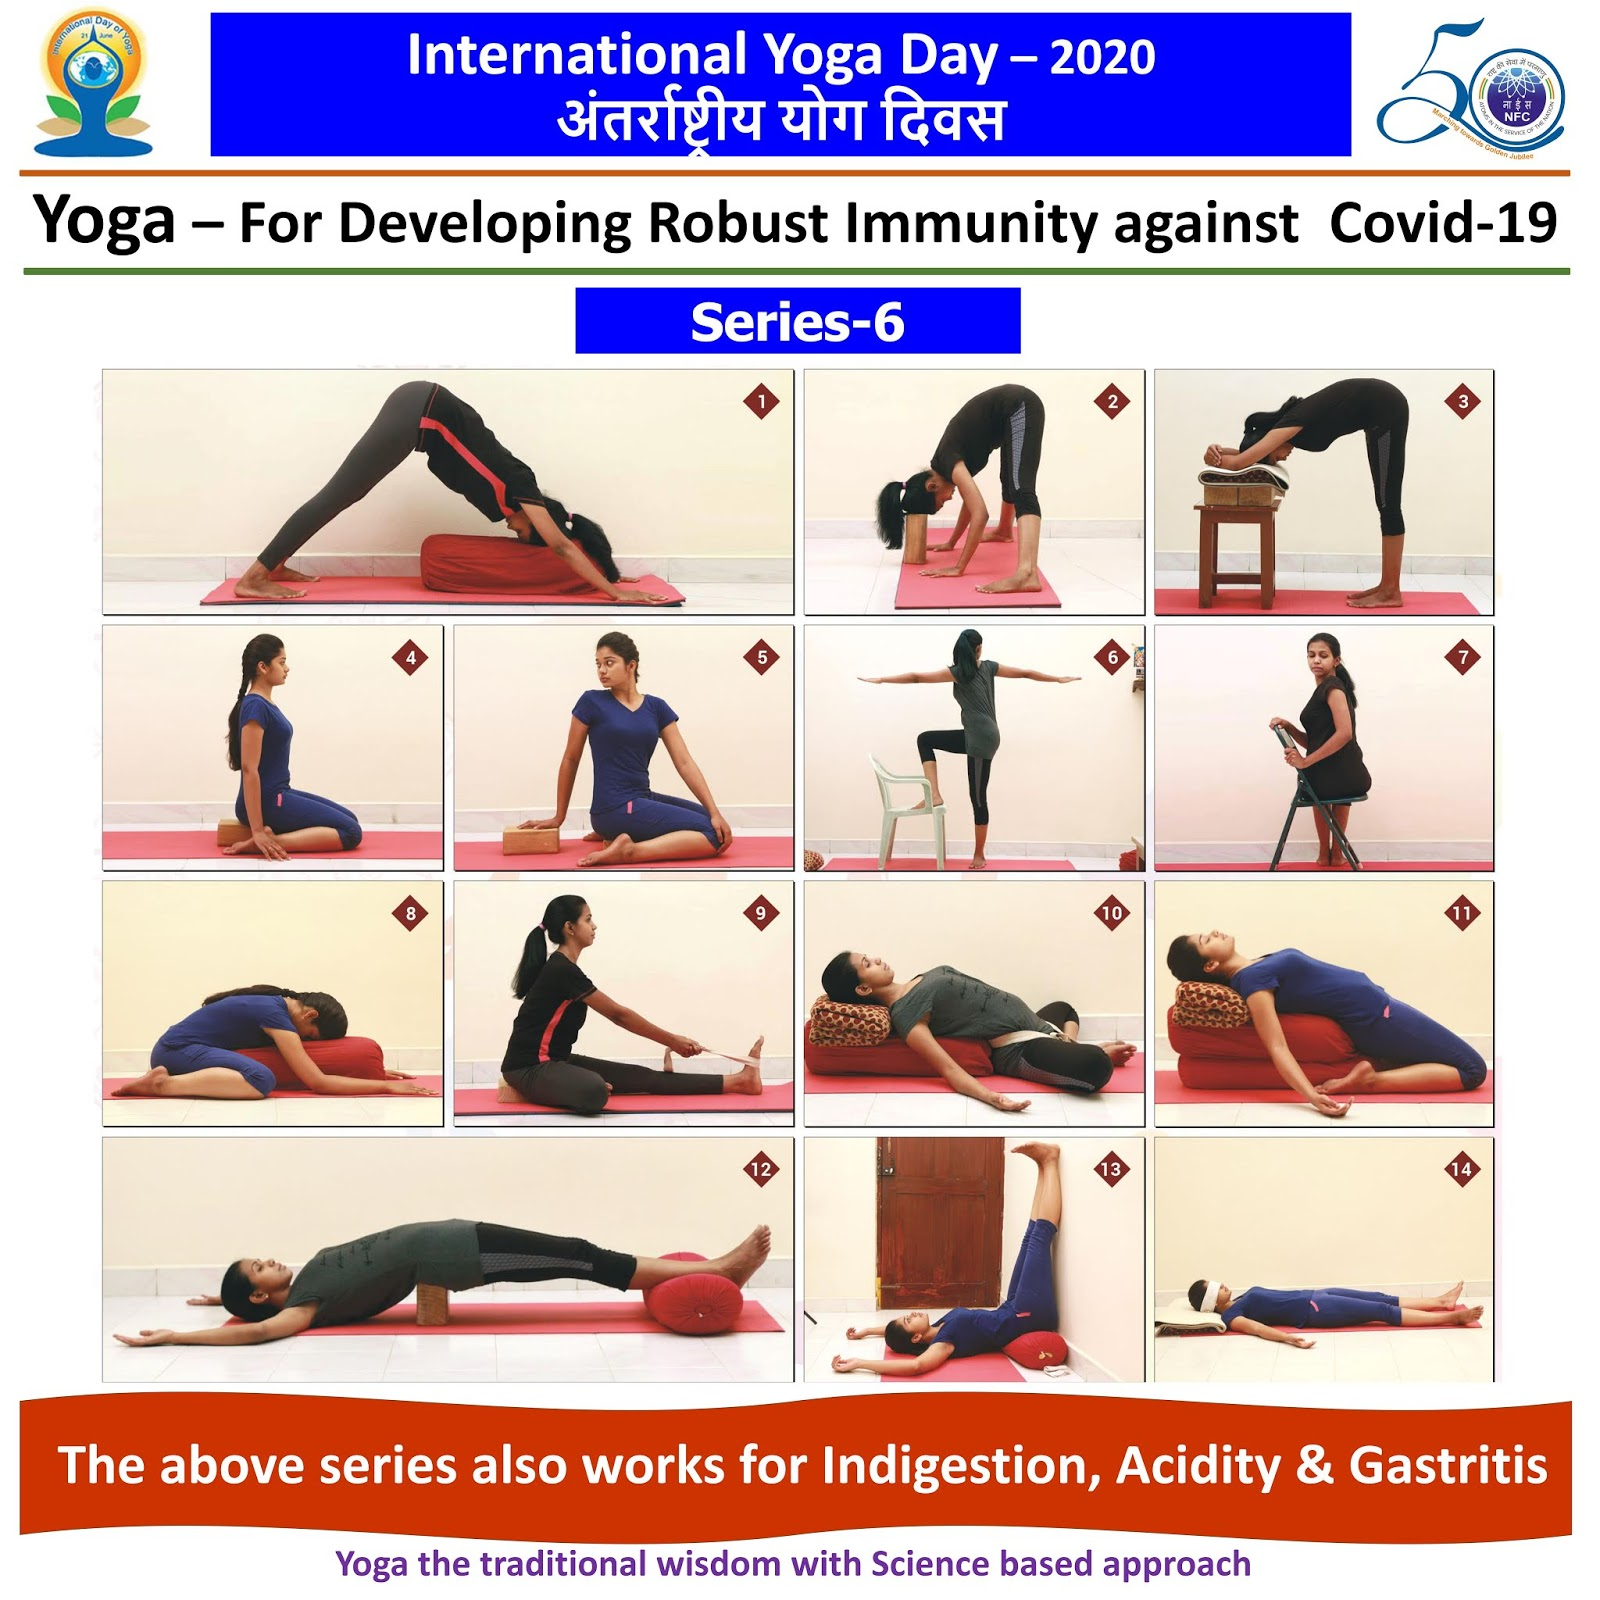 Happy International Yoga Day ... This series also works for Indigestion, Acidity & Gastritis